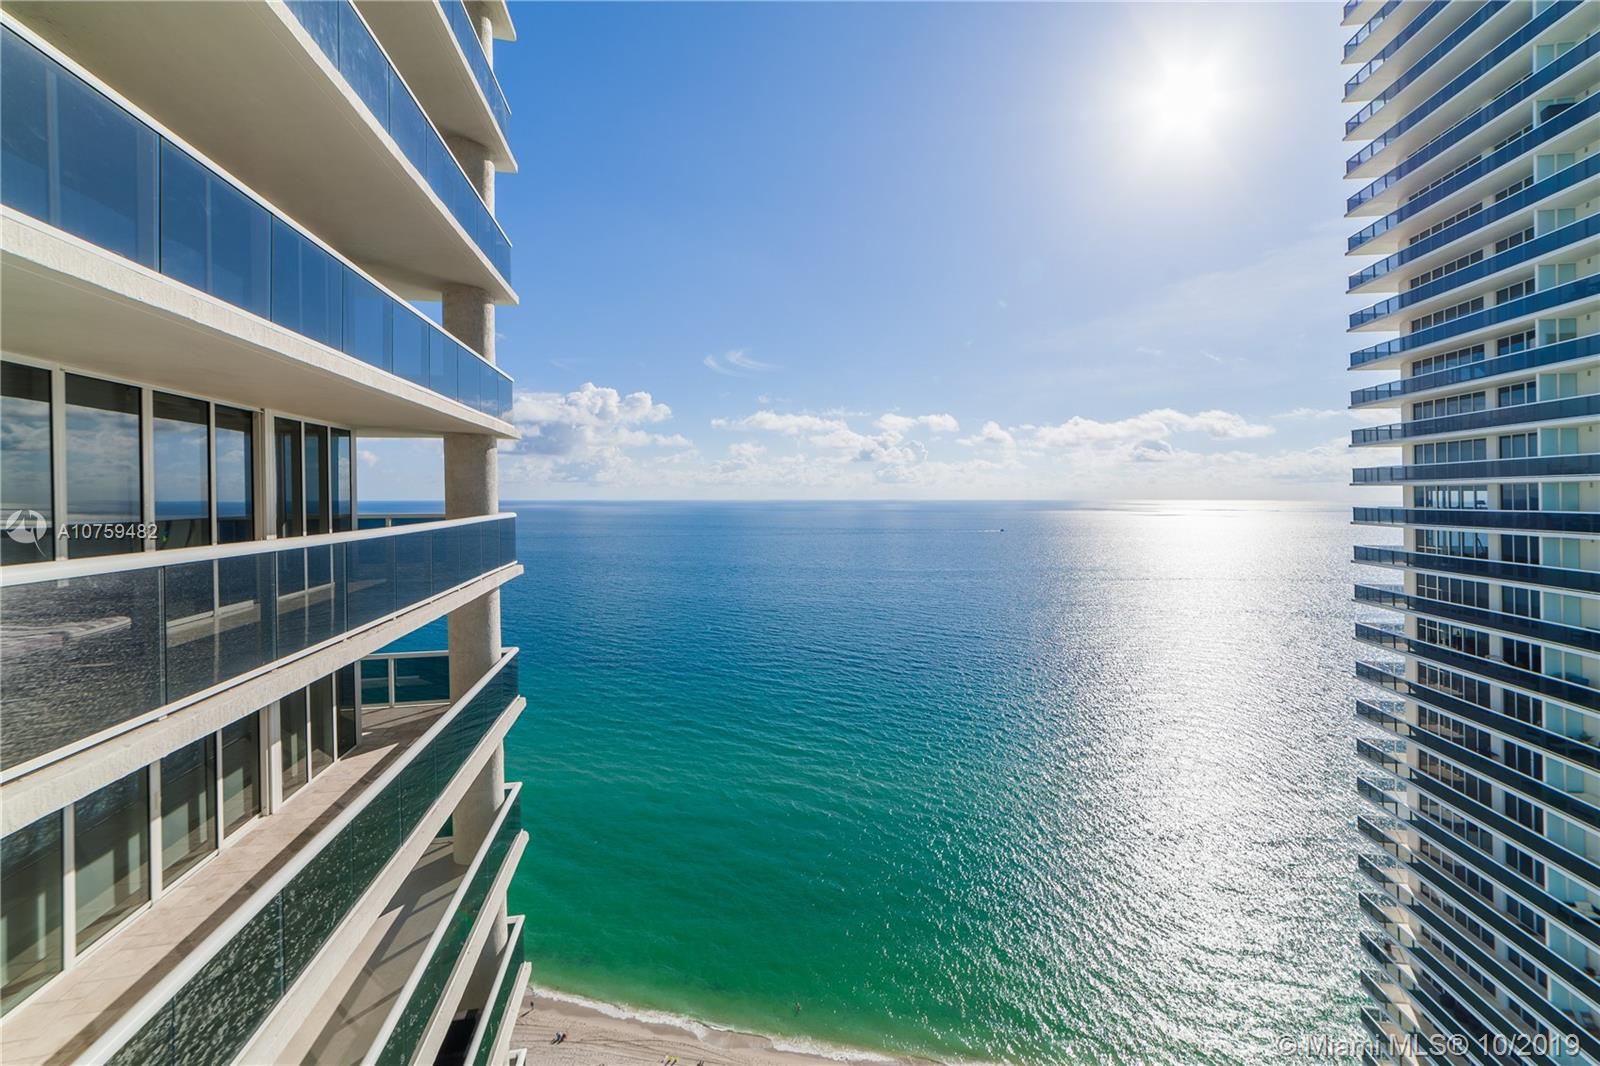 OCEANFRONT LUXURY CONDO with amazing ocean and city panoramic views from 33 FLOOR (2 balconies 457 s.f.) from this 2 bed/2 bath 1782 S.F. corner unit. 5 Star Three Tower complex featuring a 50,000 S.F. full service SPA & fitness center overlooking the ocean, restaurant & full bar w/pool service & delivery. Full time concierge & 24 hours valet parking & security. Top-of-the line appliances, great furniture, laundry room inside unit, huge closets & open kitchen. The best amenities on the beach in a growing city centrally located between Miami and Fort Lauderdale. Next to shopping, golfing, restaurants, horse racing, water sports + boating & more. This is amazing opportunity, call listing agent for private showing!!!